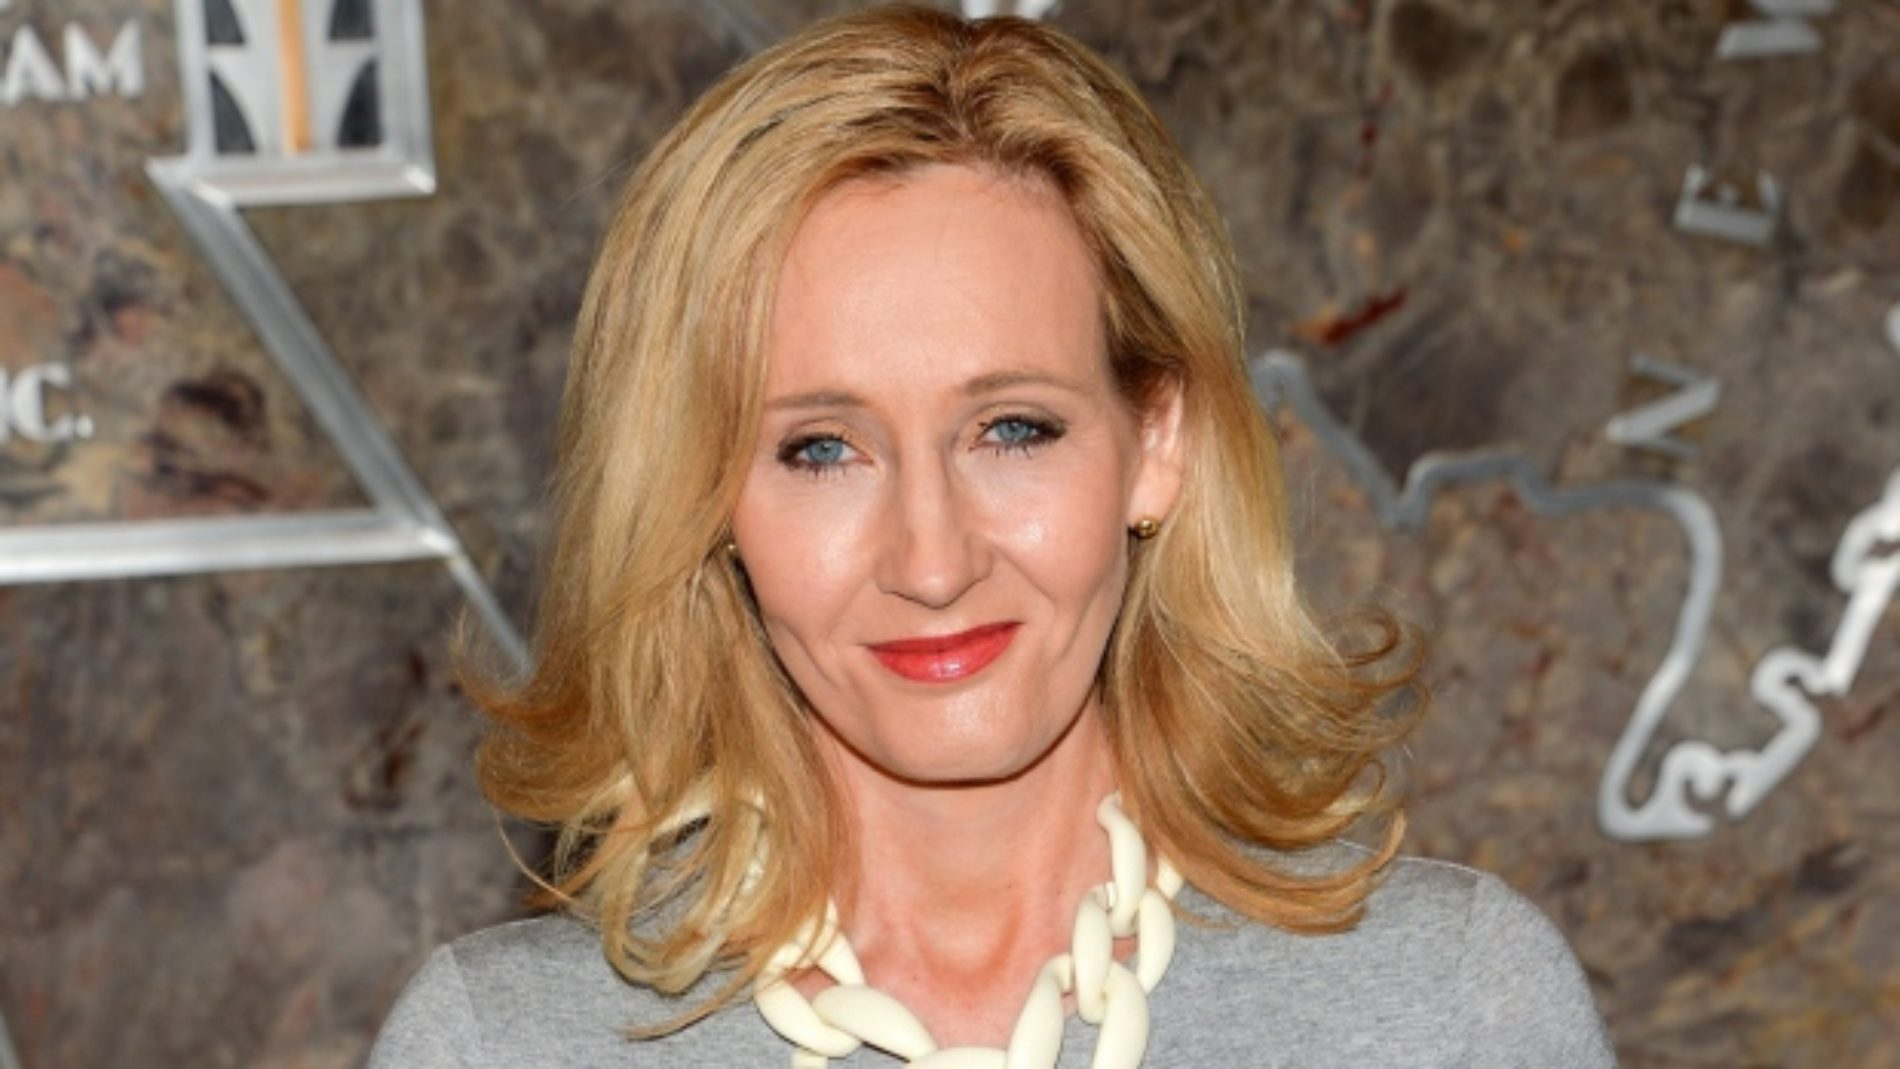 JK Rowling hints Dumbledore's gay life will be explored in Fantastic Beasts films